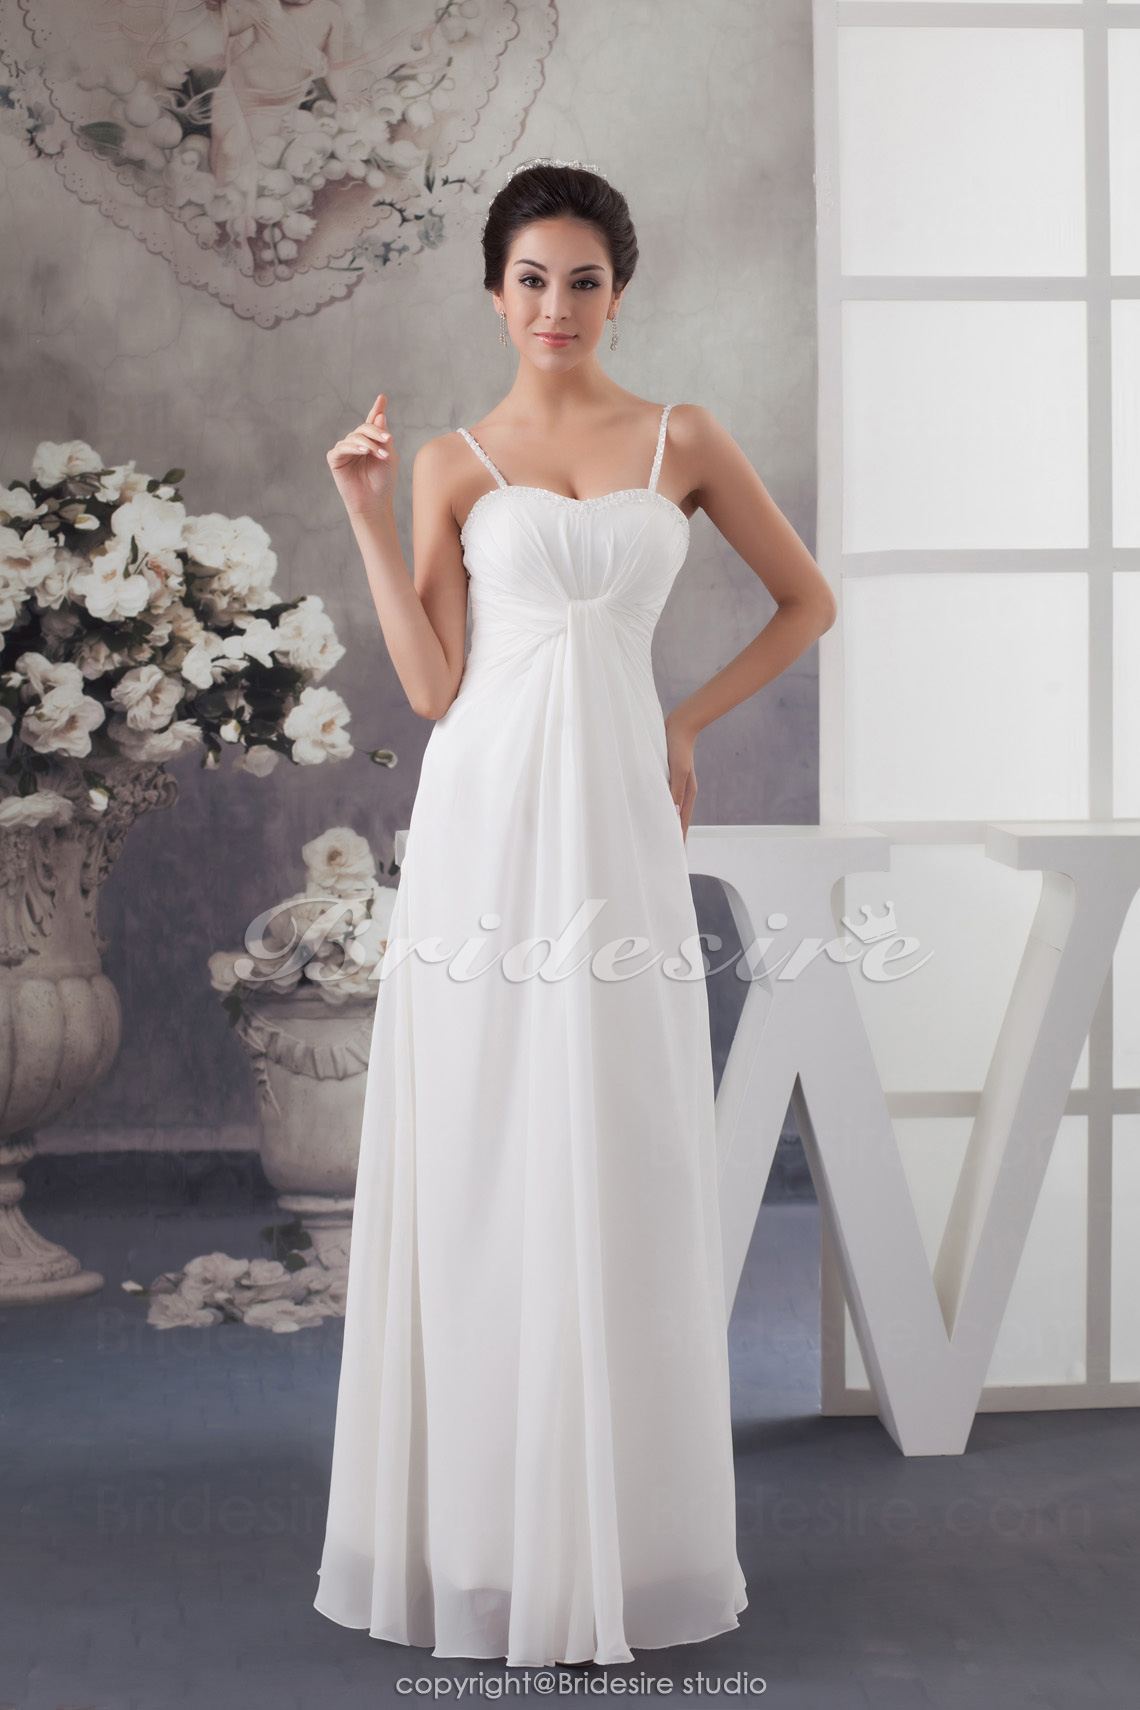 20f8c145 Bridesire - Sheath/Column Spaghetti Straps Floor-length Sleeveless Chiffon  Wedding Dress [BD4787] - US$91.99 : Bridesire